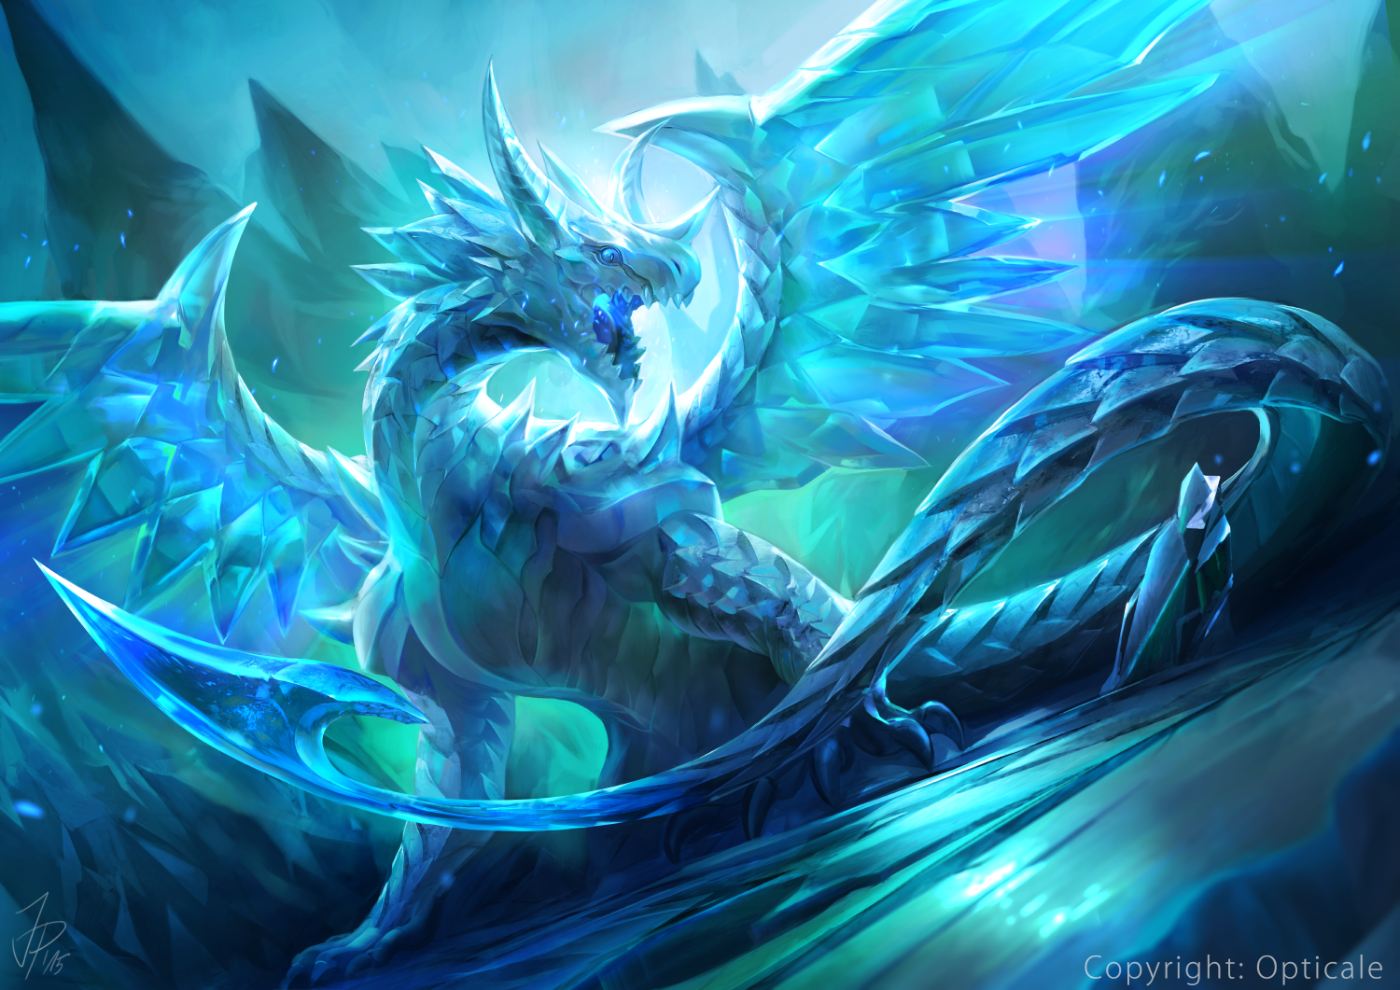 The Legendary Crystal Dragon Opticale by catmeff on DeviantArt